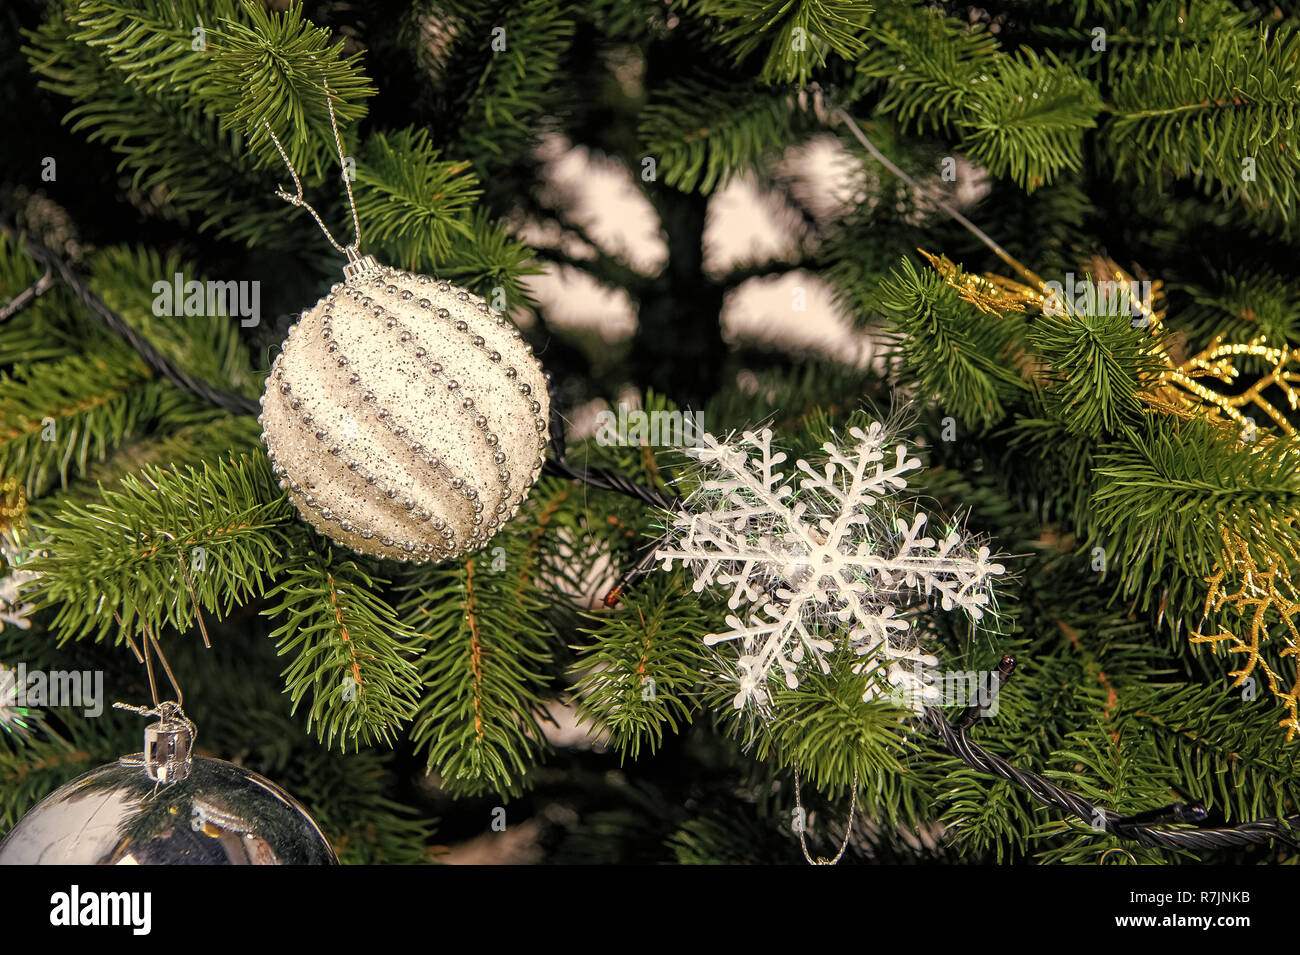 Snowflake And Balls On Green Branches Christmas Tree With Fir